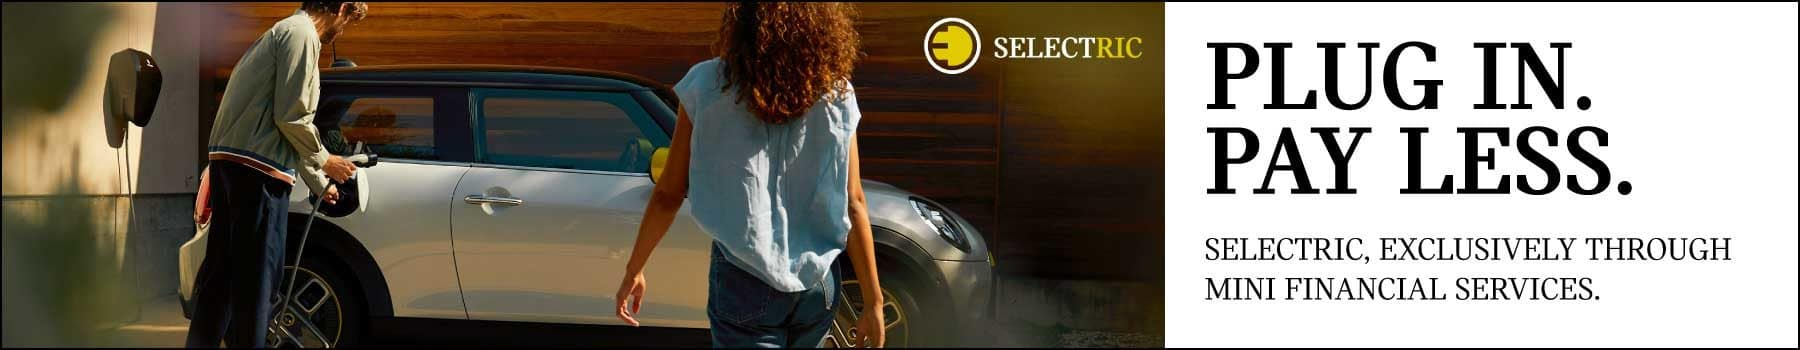 PLUG IN. PAY LESS. SELECTRIC, EXCLUSIVELY THROUGH MINI FINANCIAL SERVICES